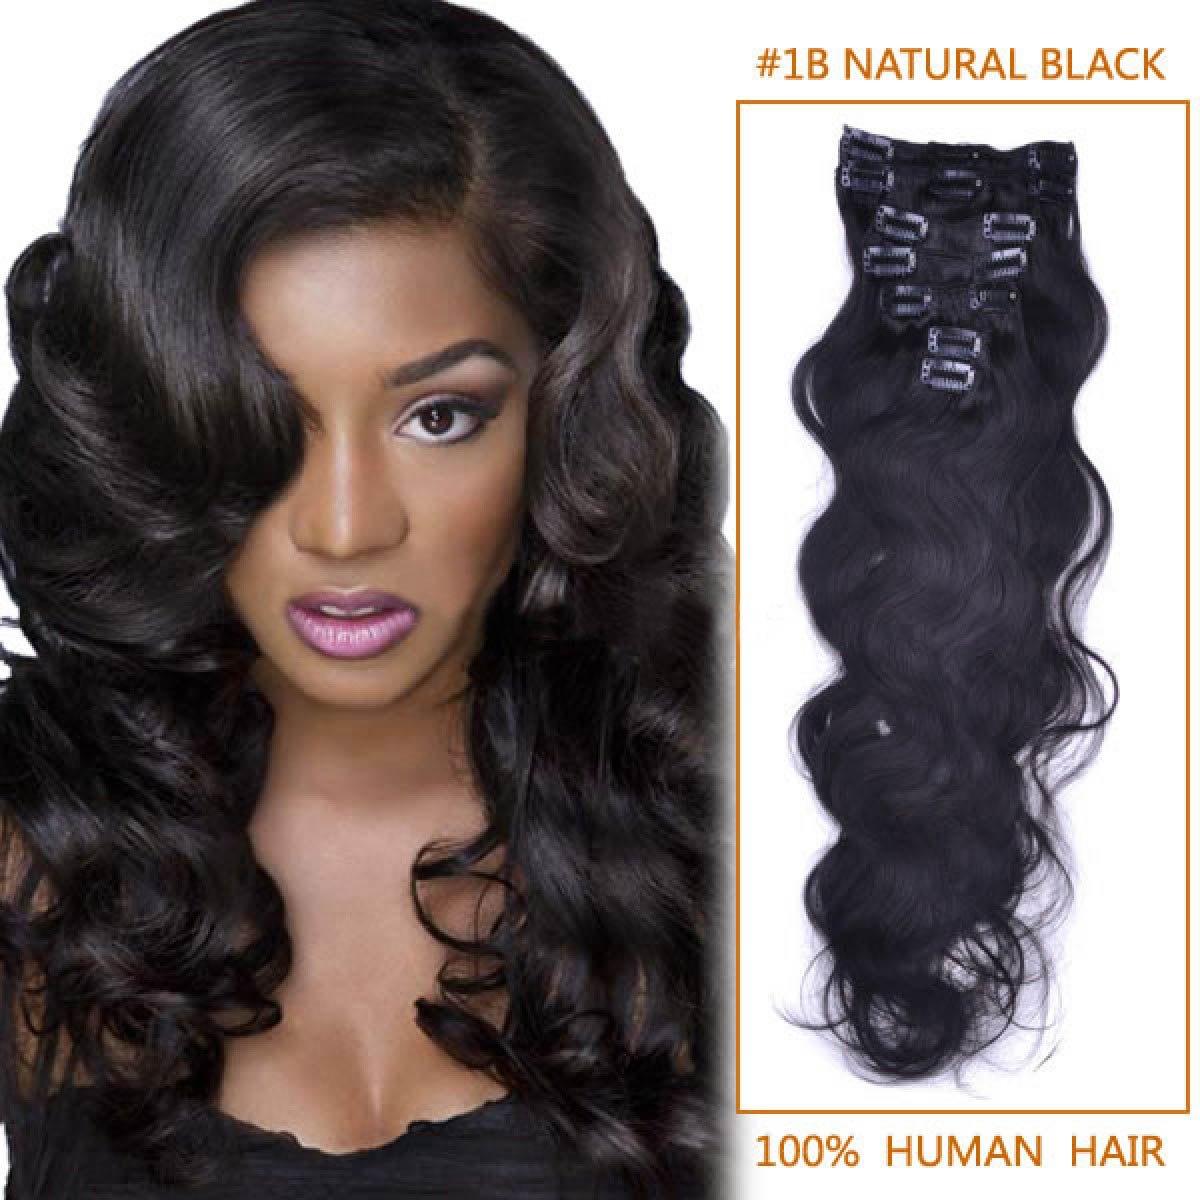 Clip In Wavy Hair Extensions Human Hair Quality Hair Accessories